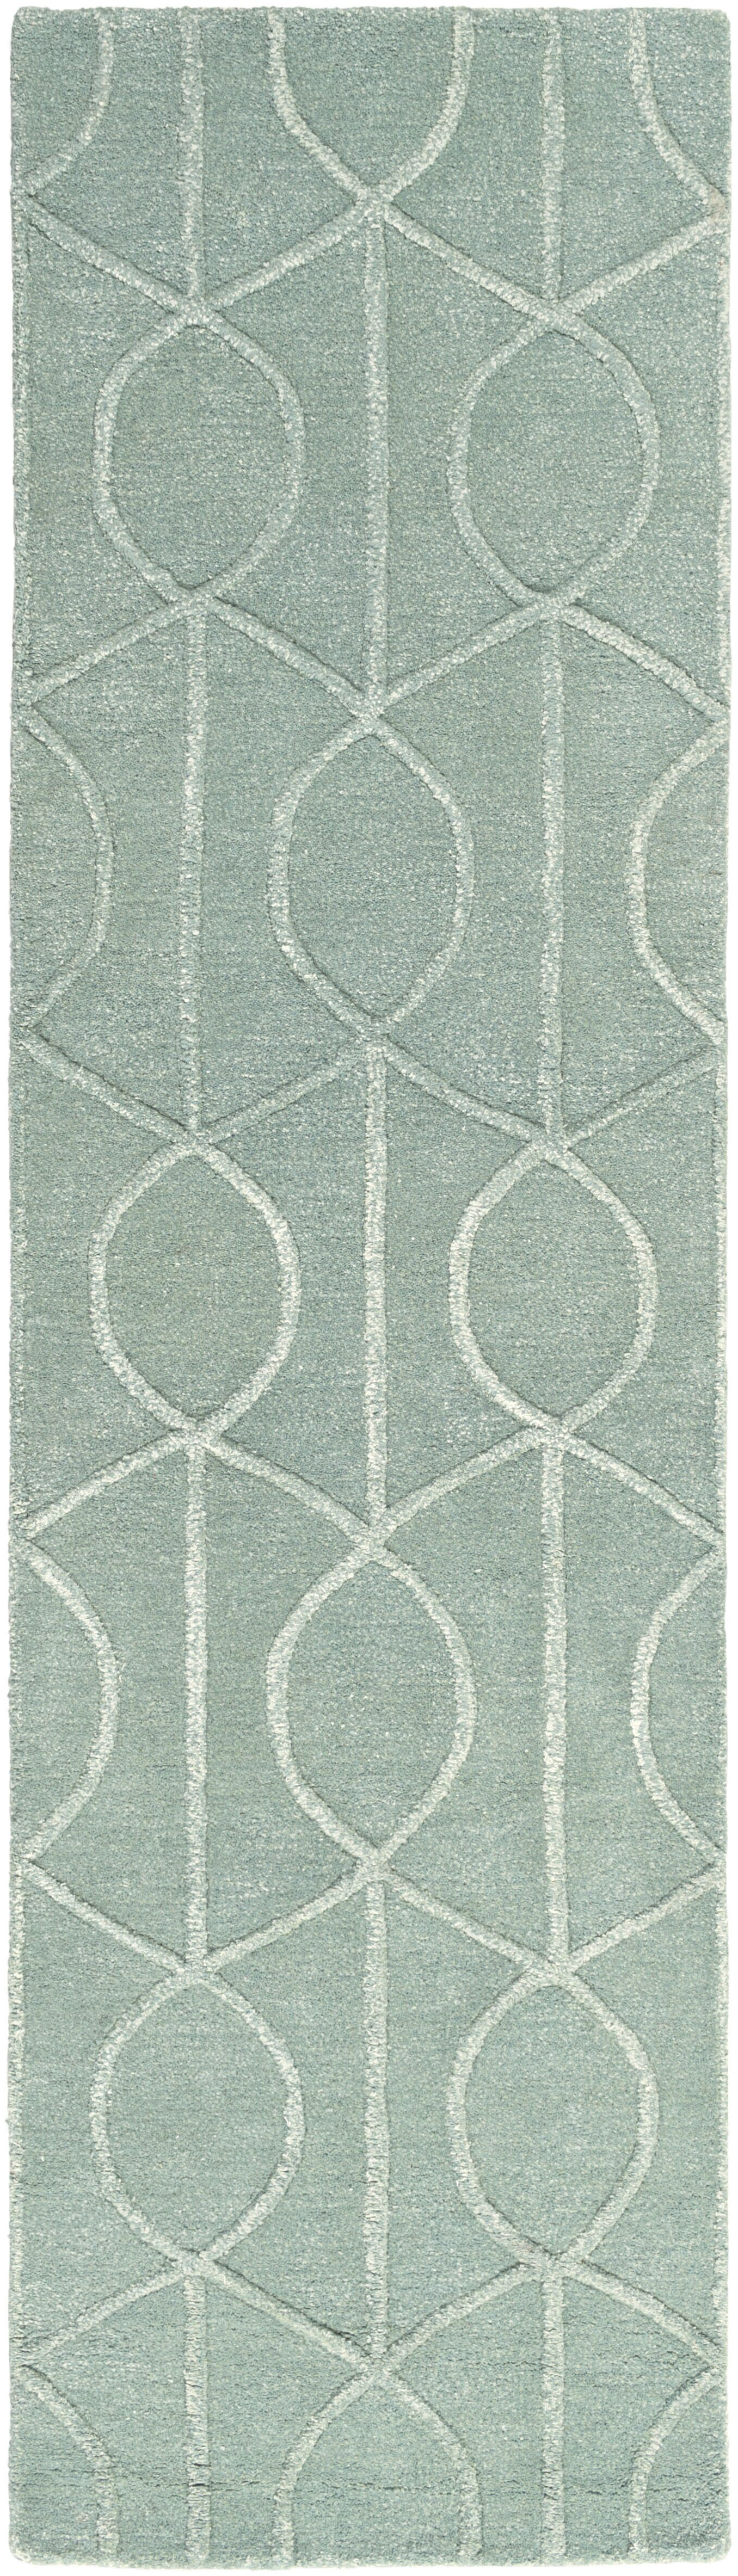 Abbey Hand-Tufted Teal Area Rug Rug Size: Rectangle 3' x 5'